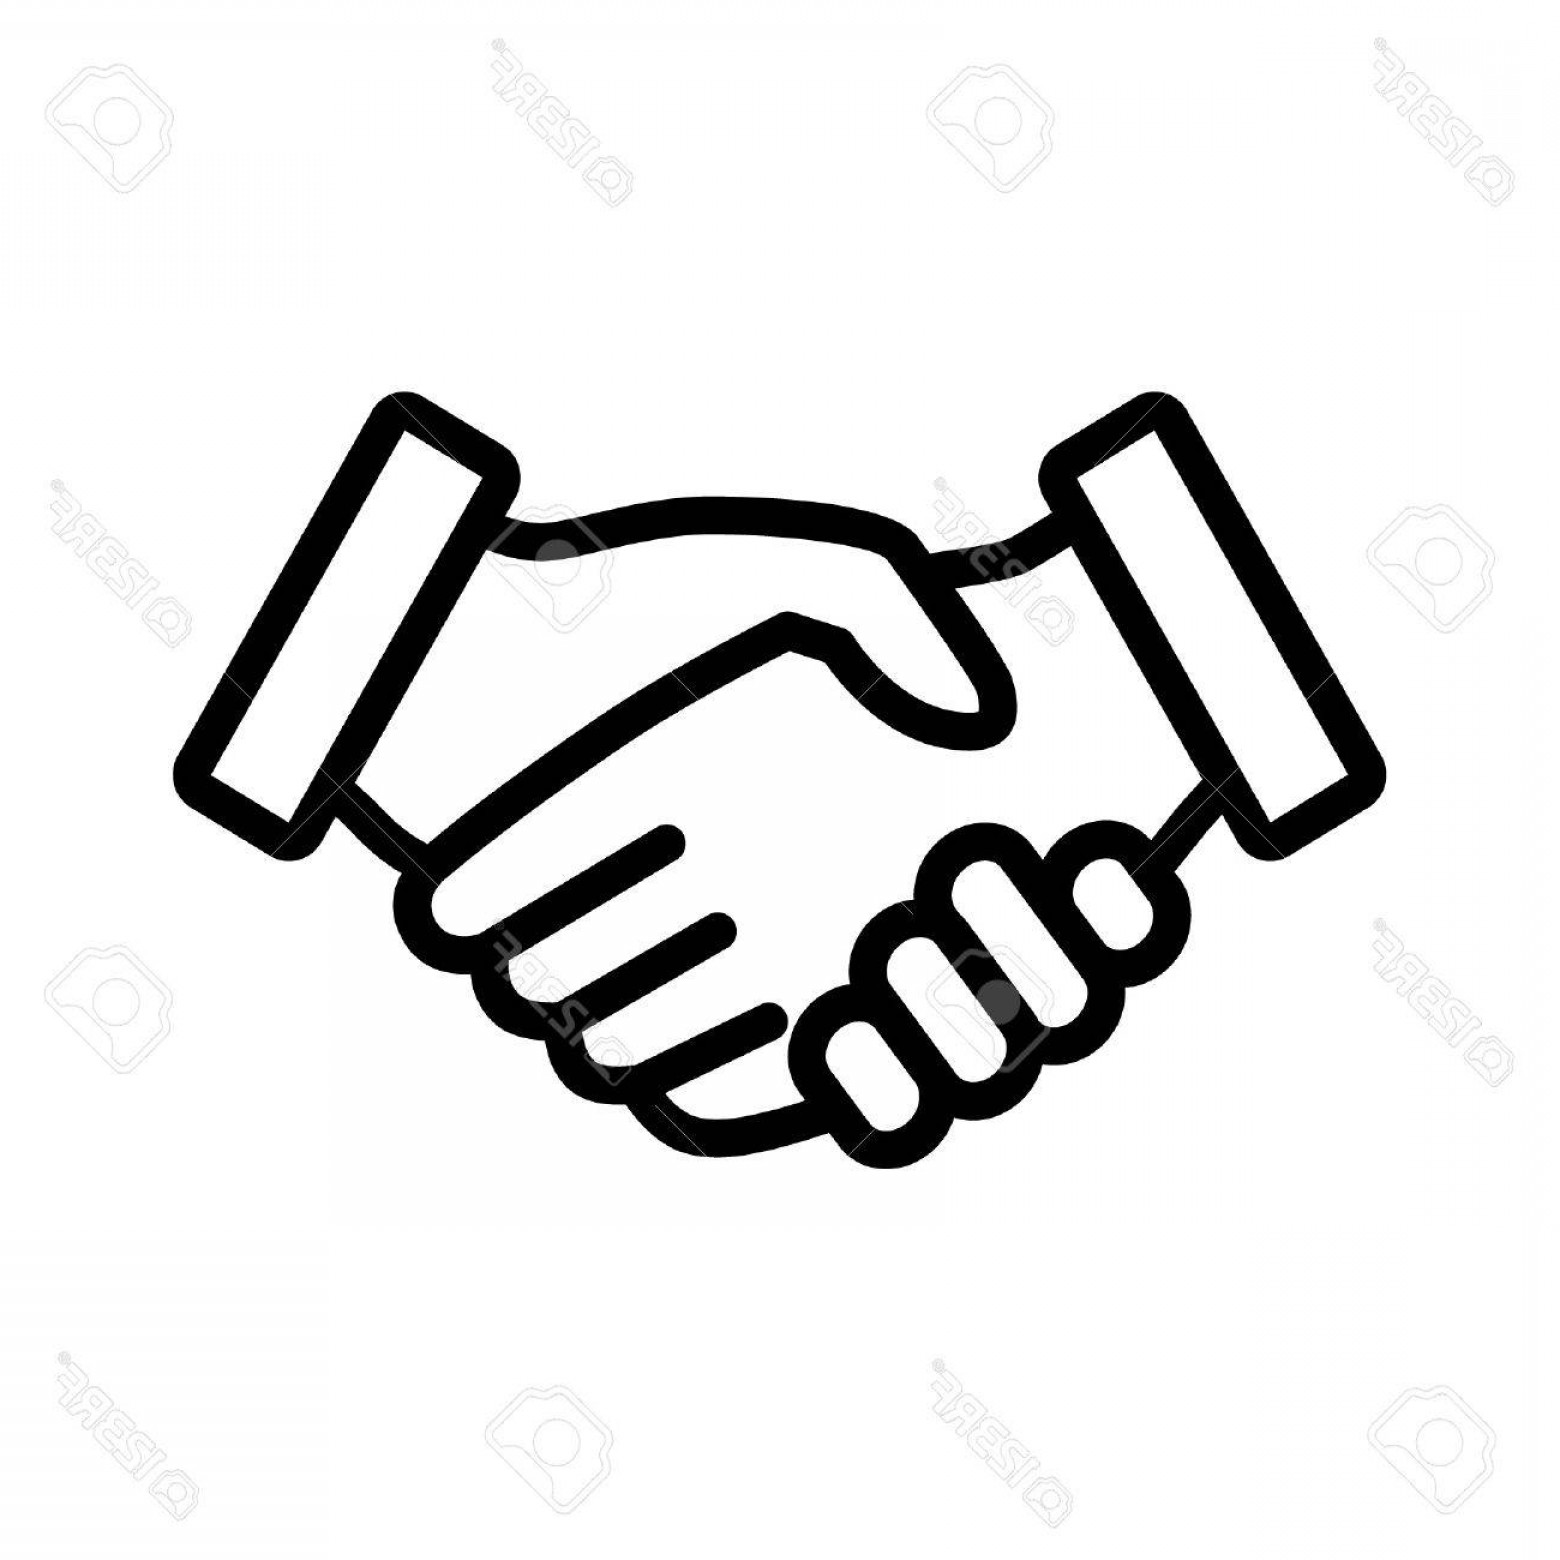 Handshake Clip Art Vector: Photostock Vector Business Agreement Handshake Line Art Icon For Apps And Websites